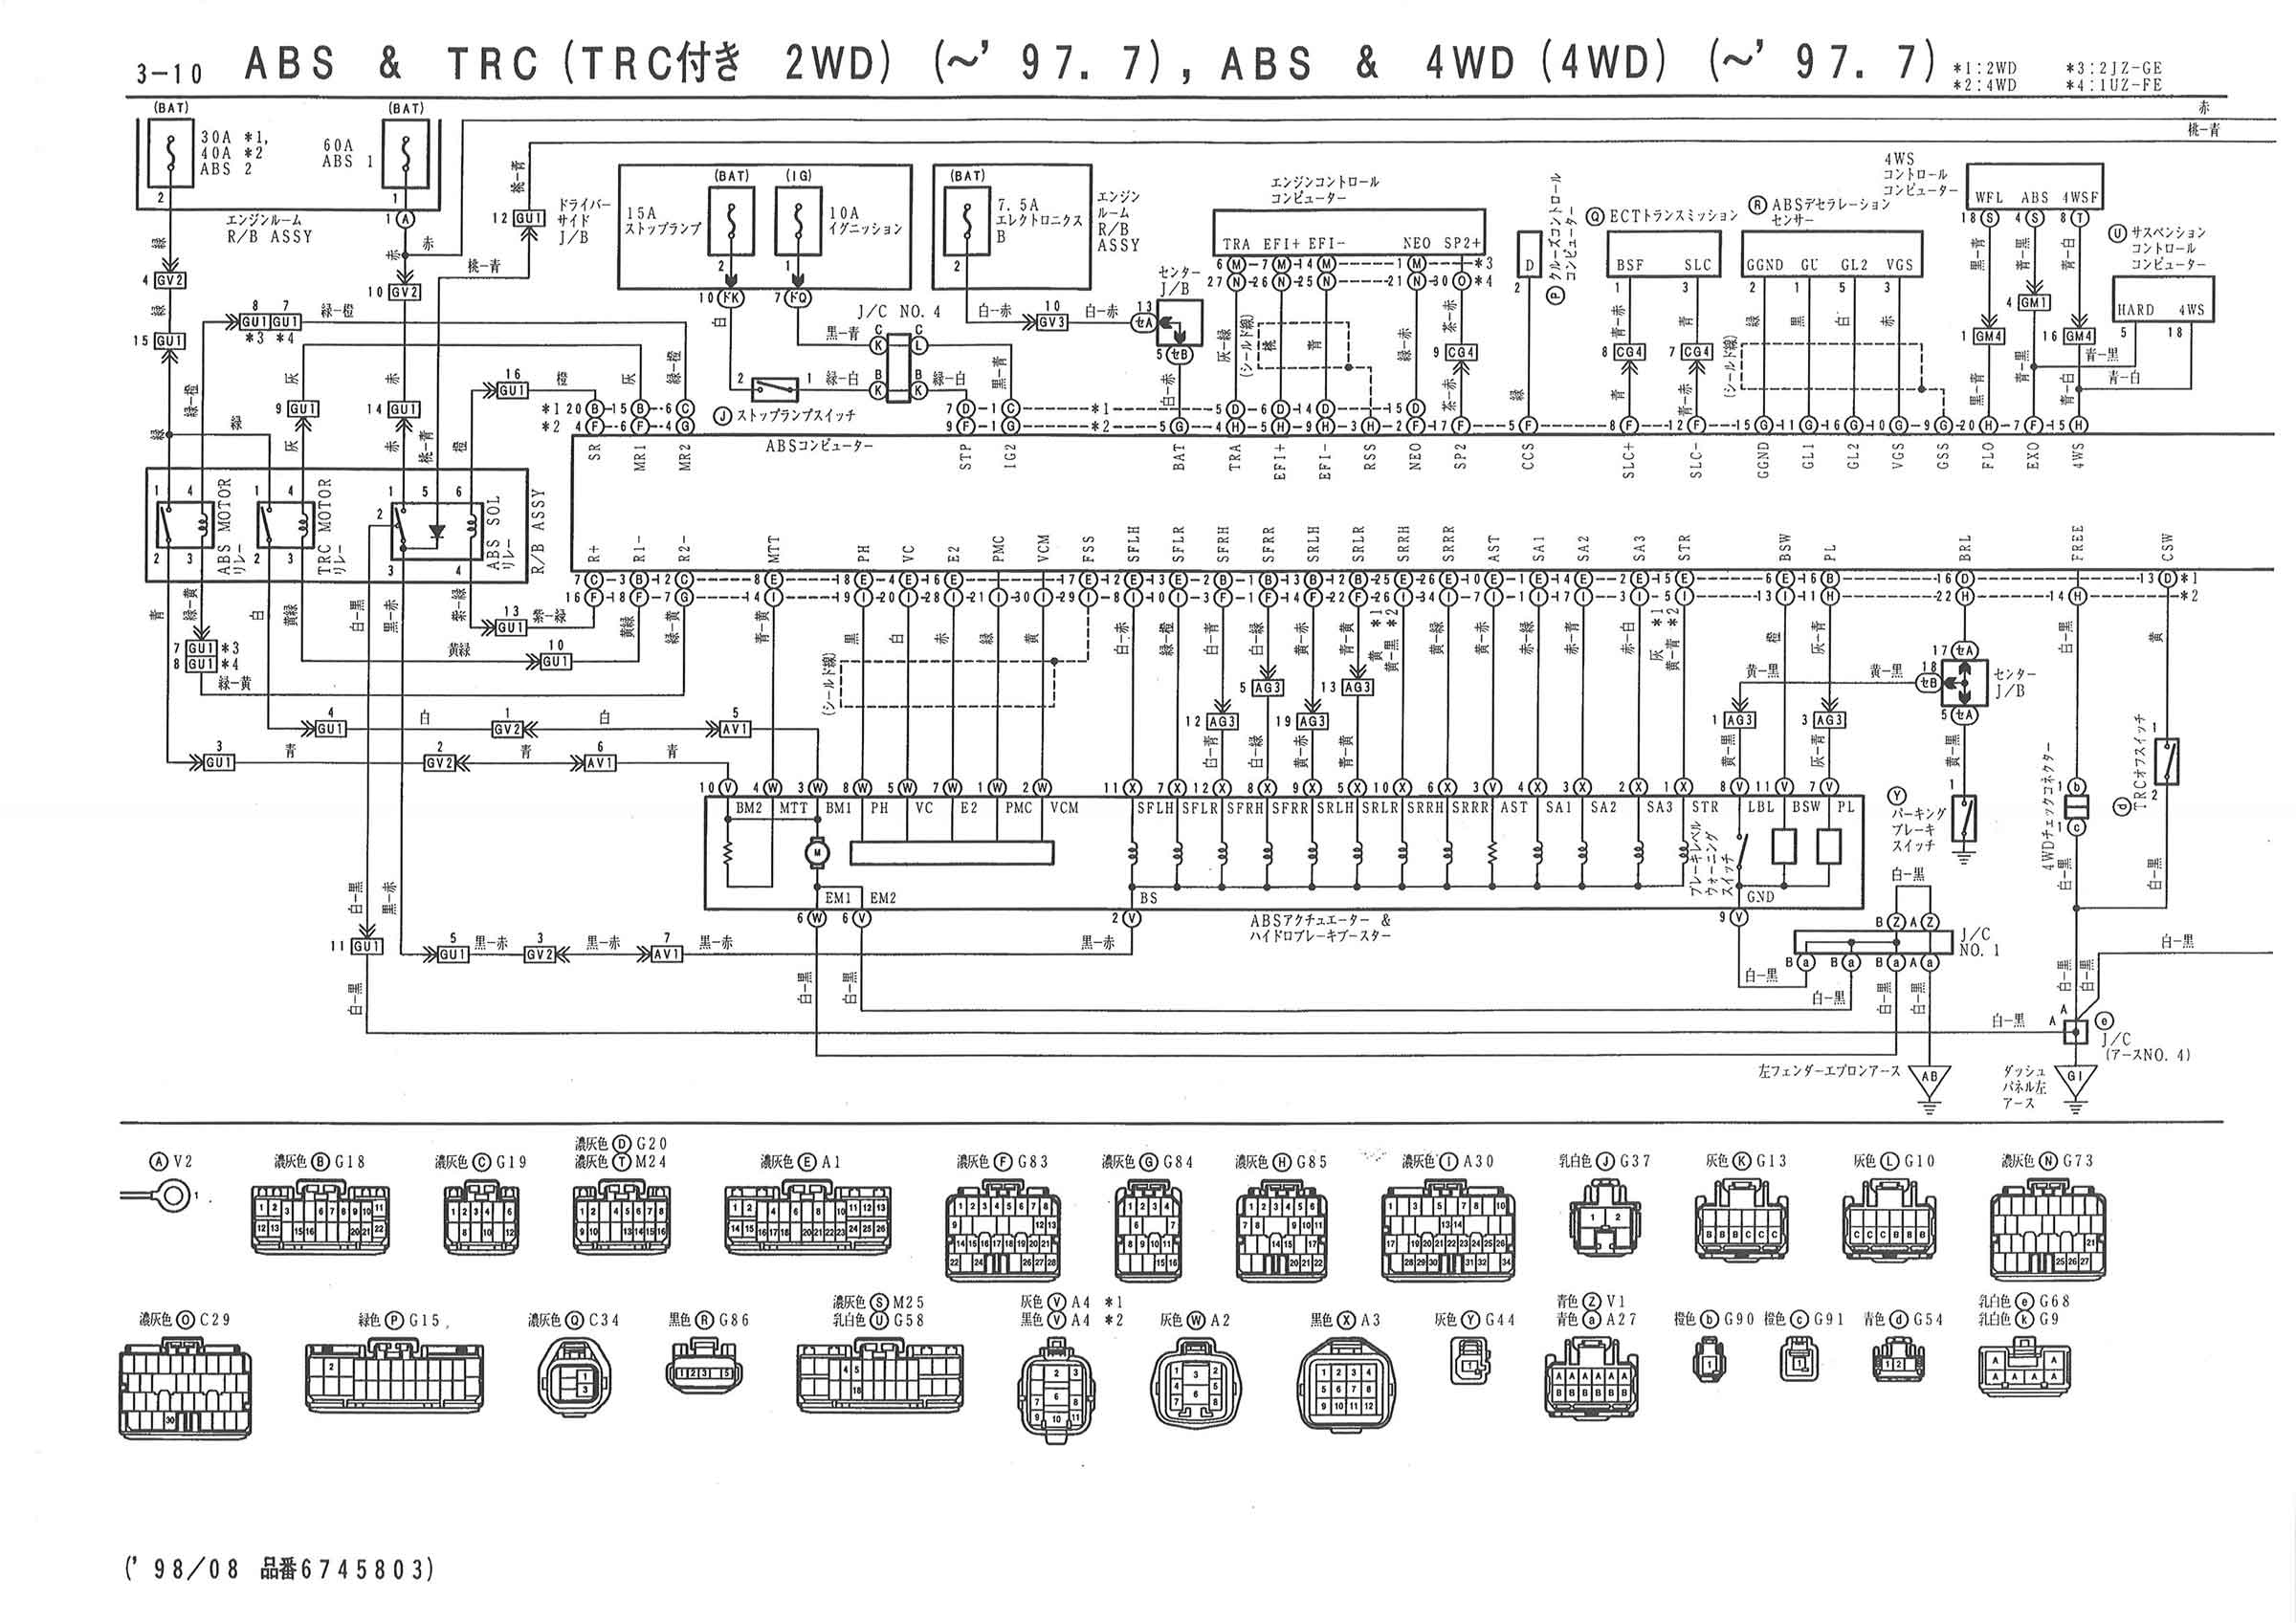 2JZ GE VVT i 7 ge vvt i 7 2jz ge wiring diagram pdf at edmiracle.co